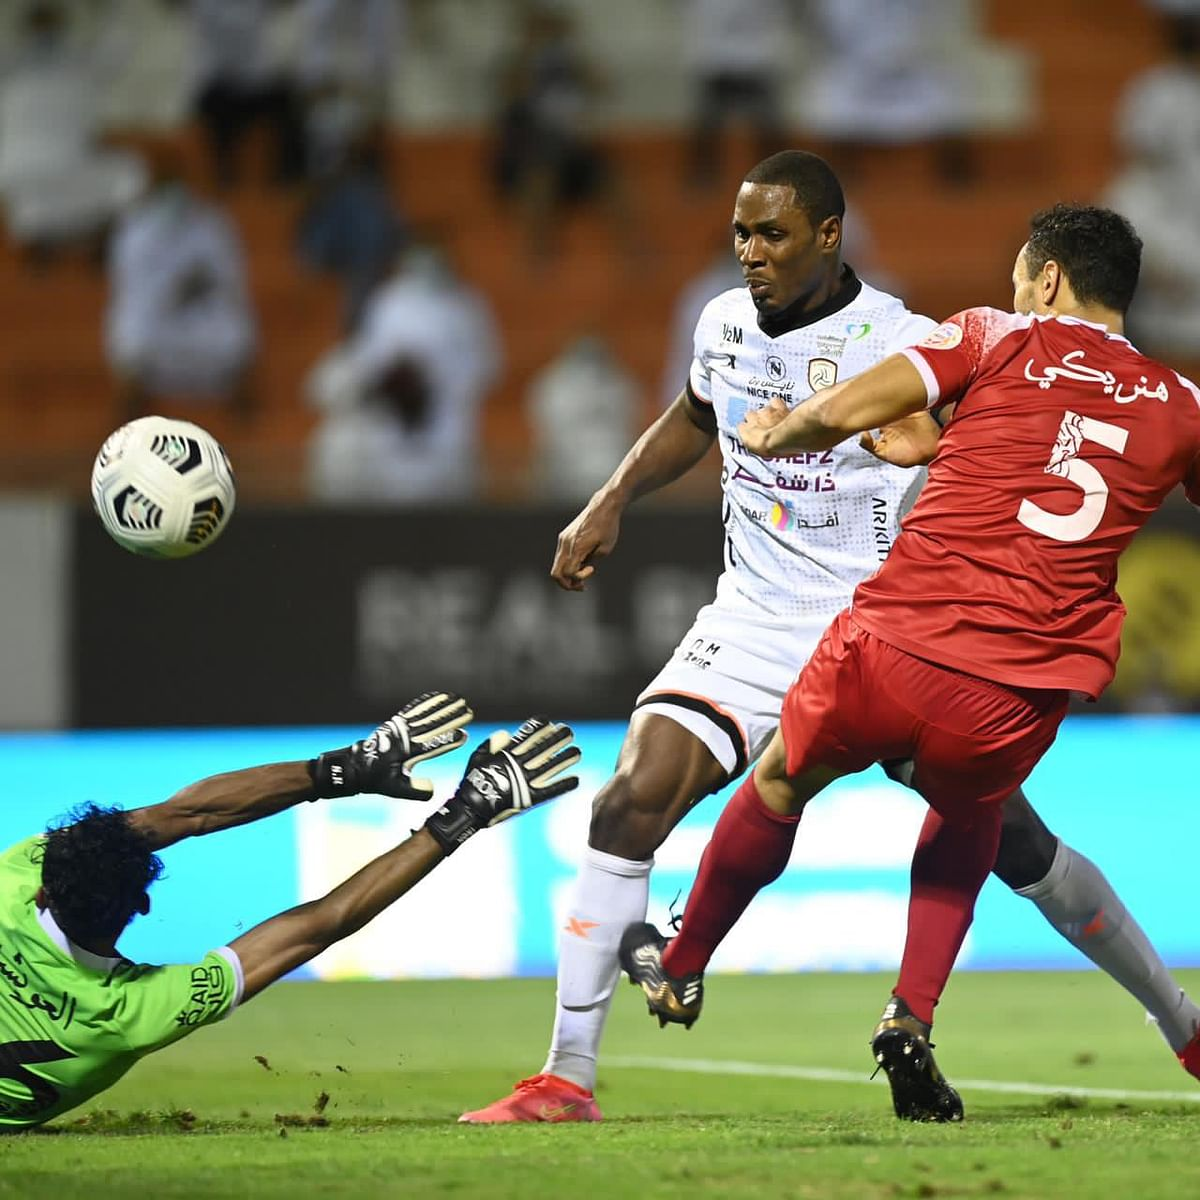 VIDEOS: Ighalo's brace gives Al Shabab 3-0 victory over Al Wehda